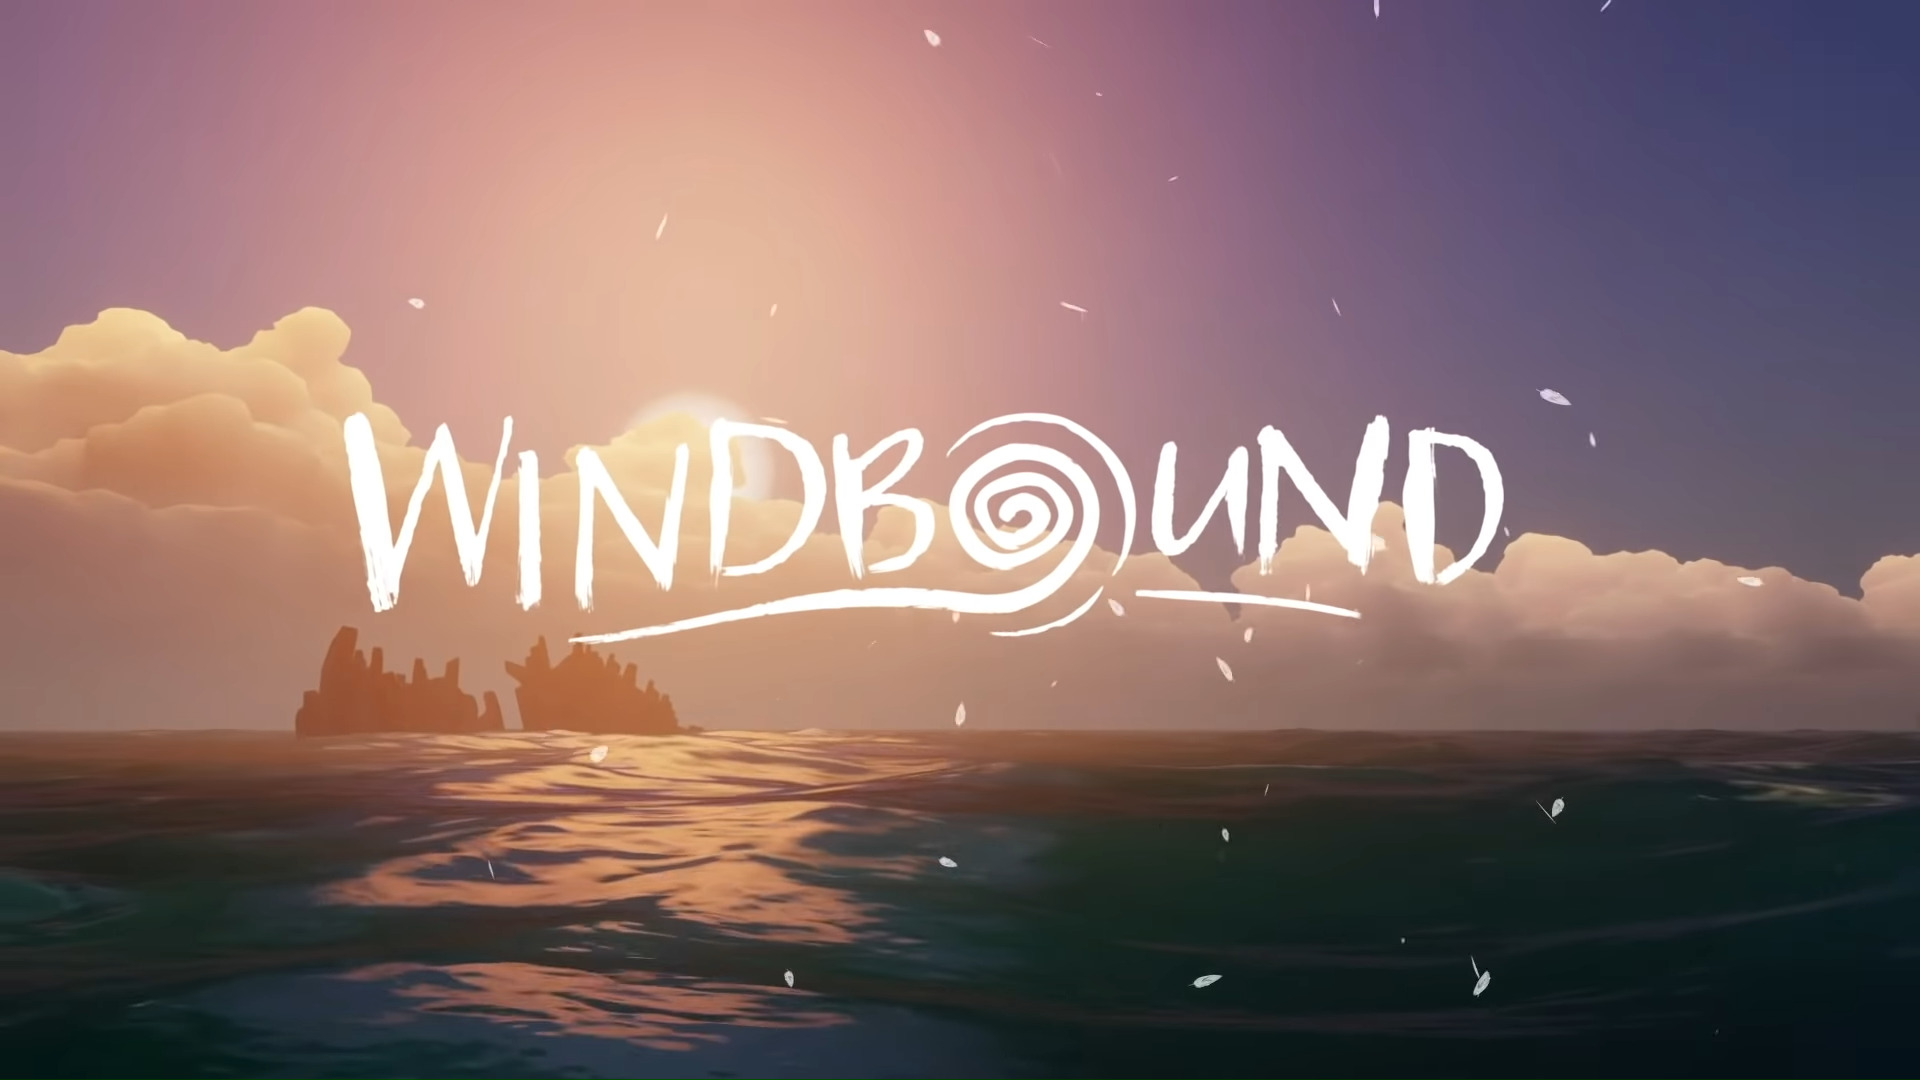 Windbound Review – This Harsh Survival Game Might Be Beautiful, But It Misses The Mark In Terms Of Gameplay